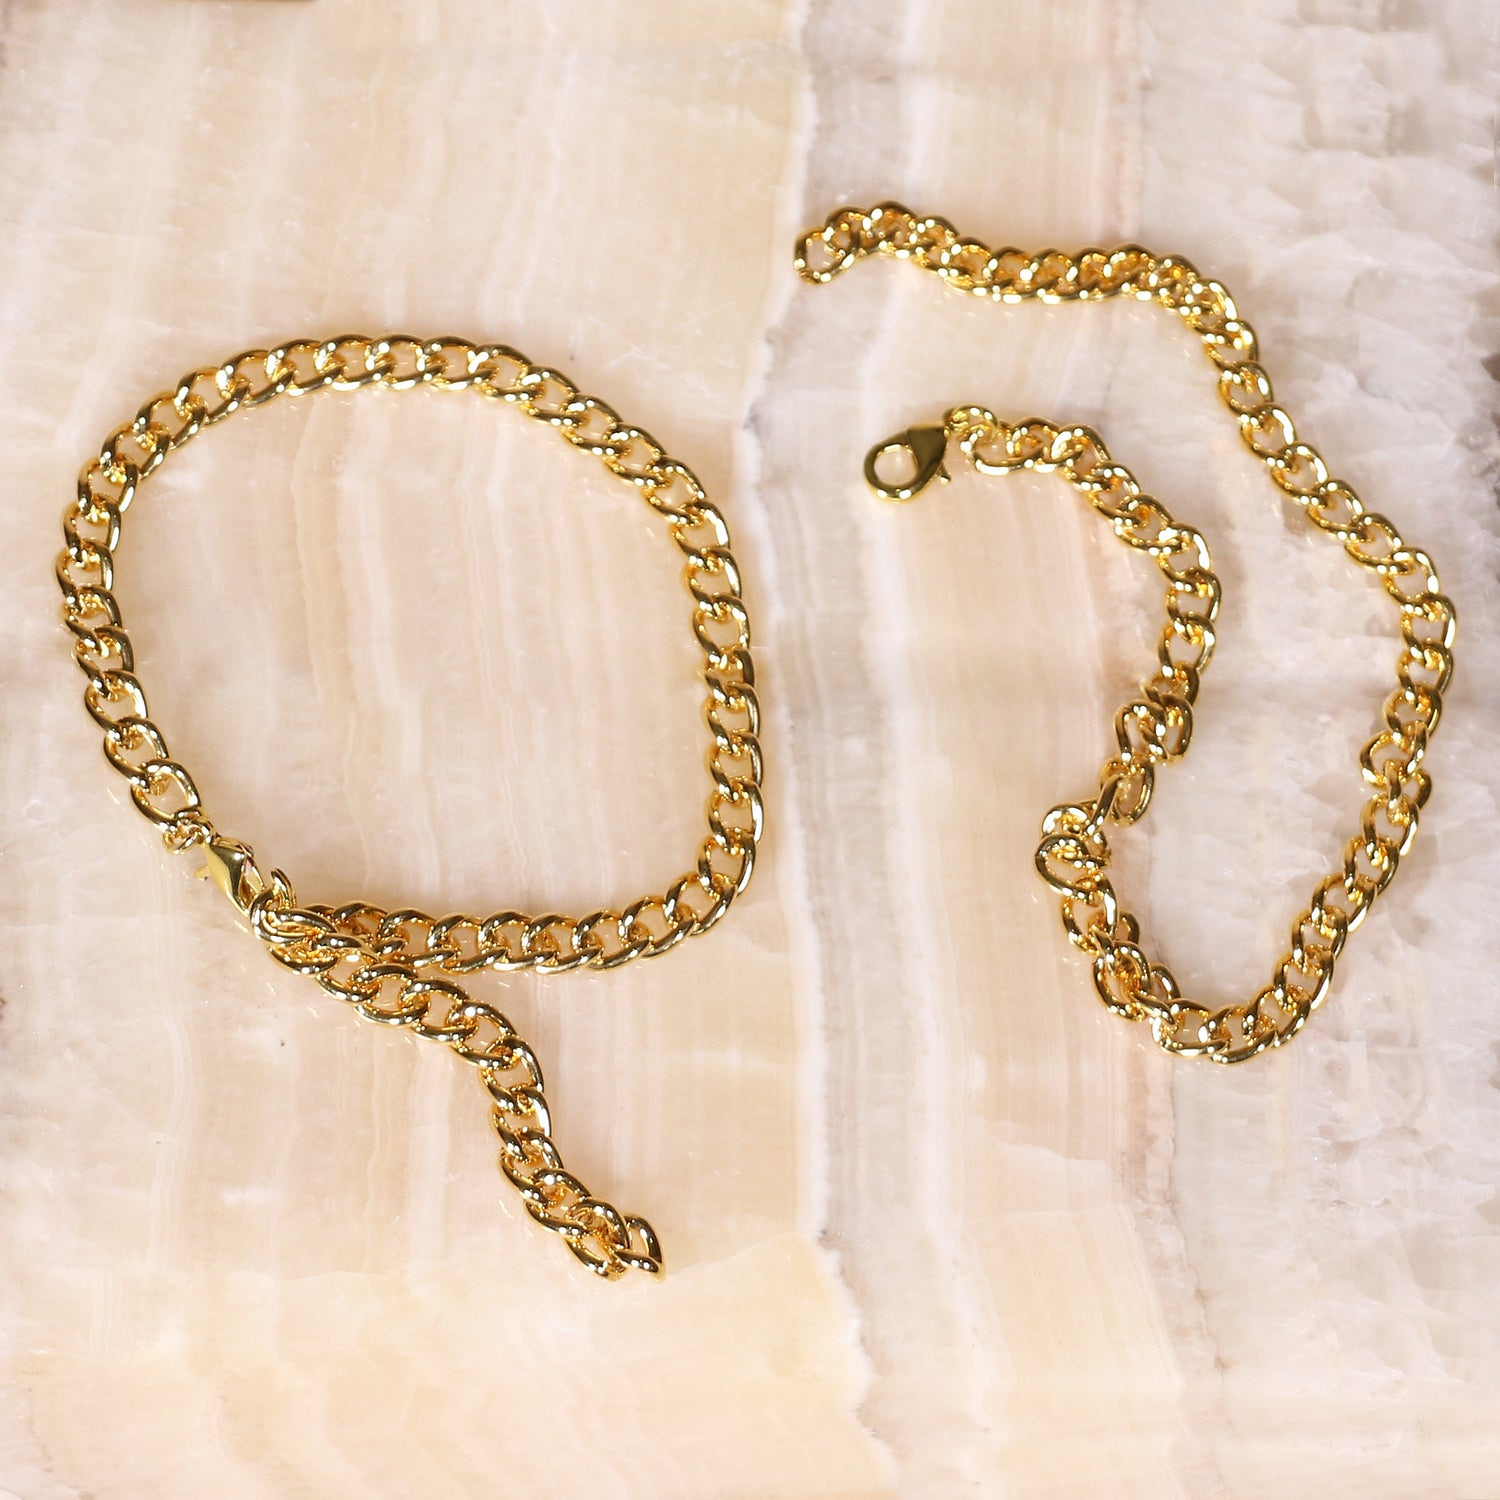 Gold Ankle Chains - Set of 2